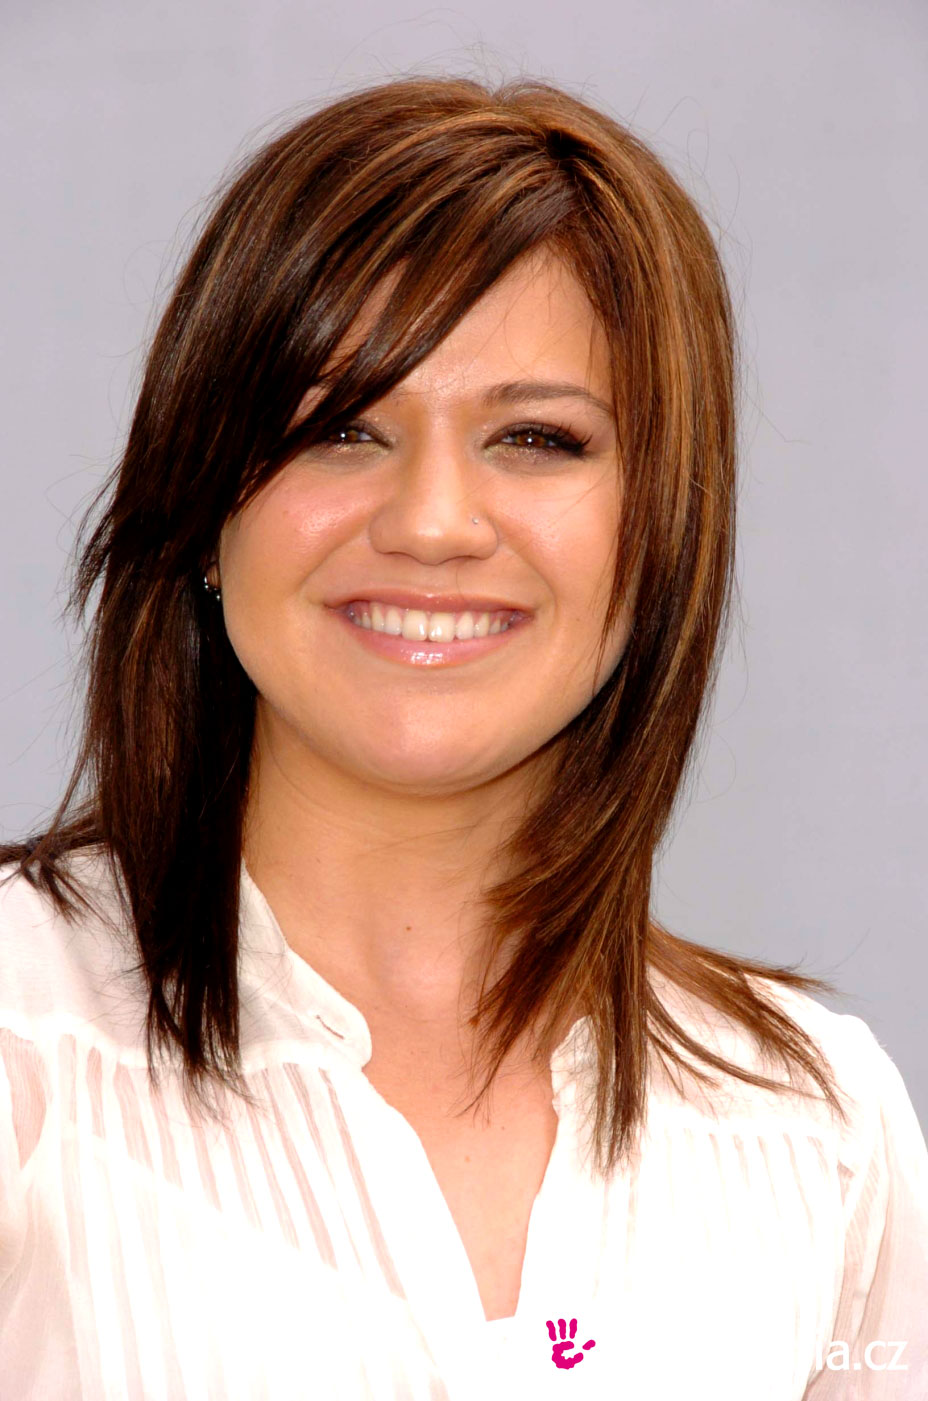 Kelly Clarkson Medium Length Hairstyle Short Hairstyle 2013